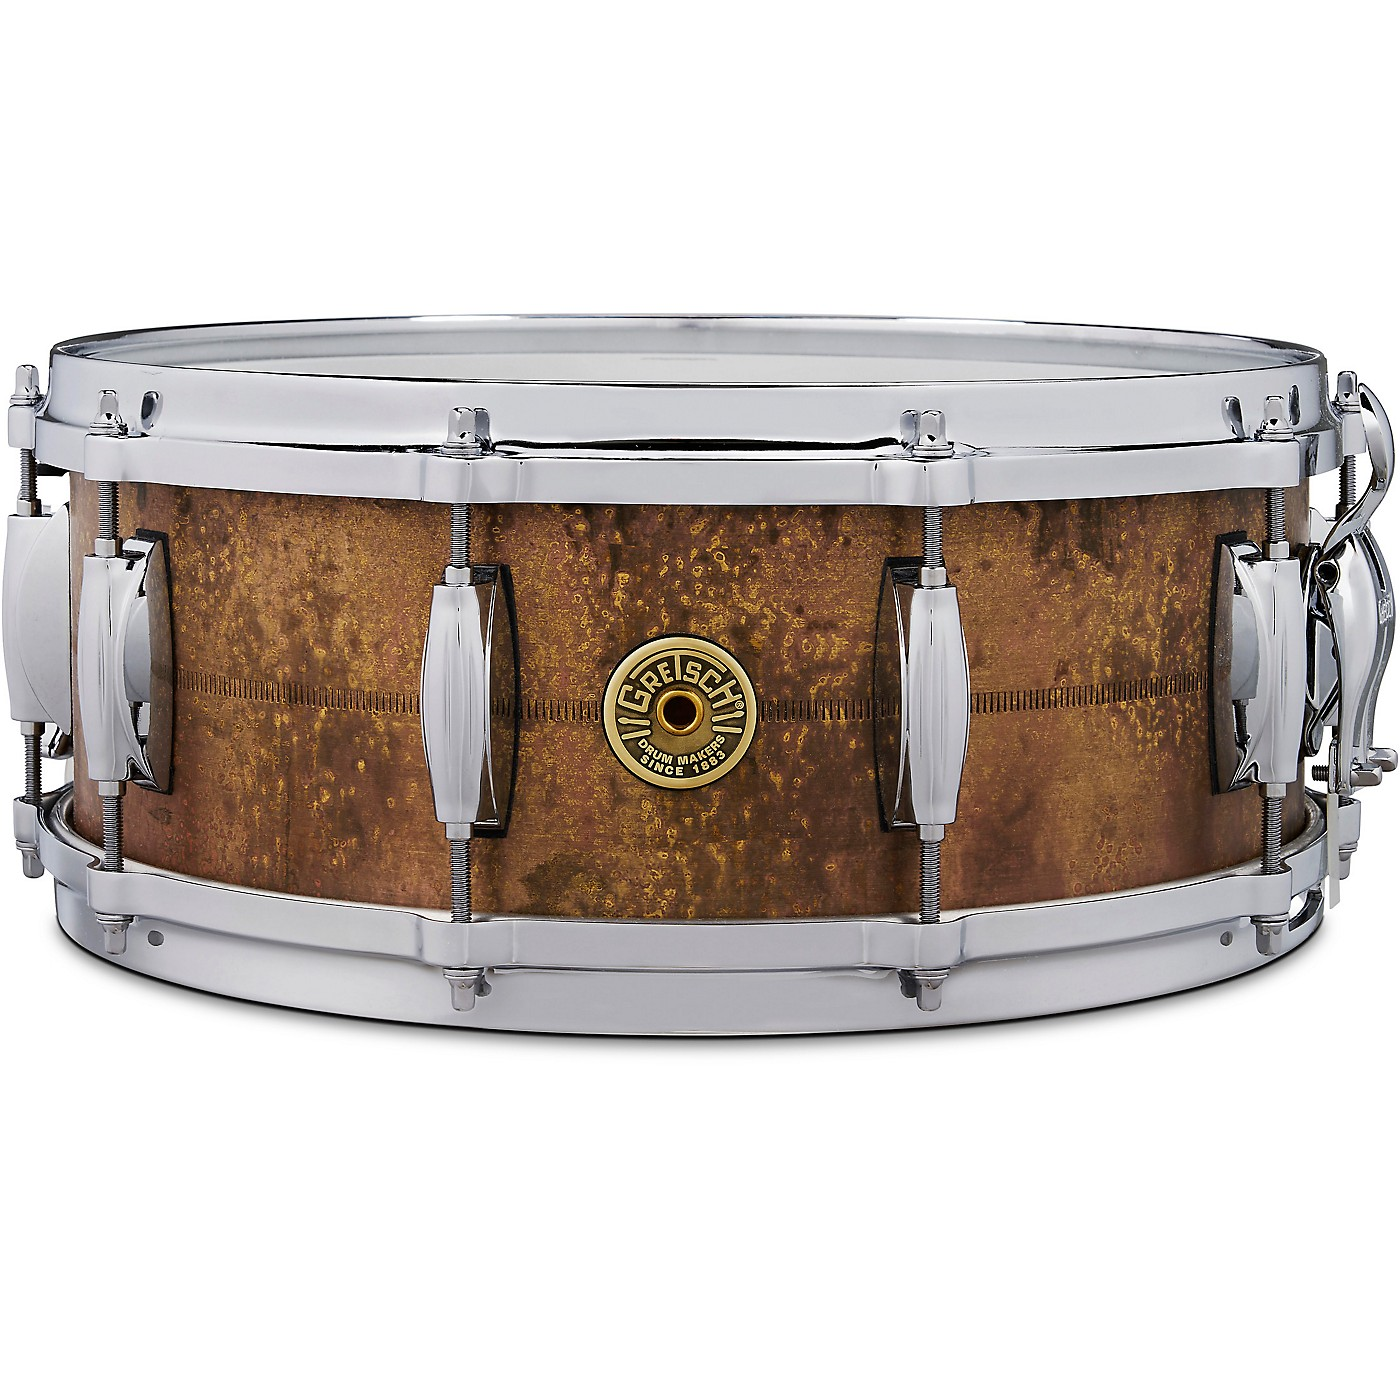 Gretsch Drums Keith Carlock Signature Snare Drum thumbnail